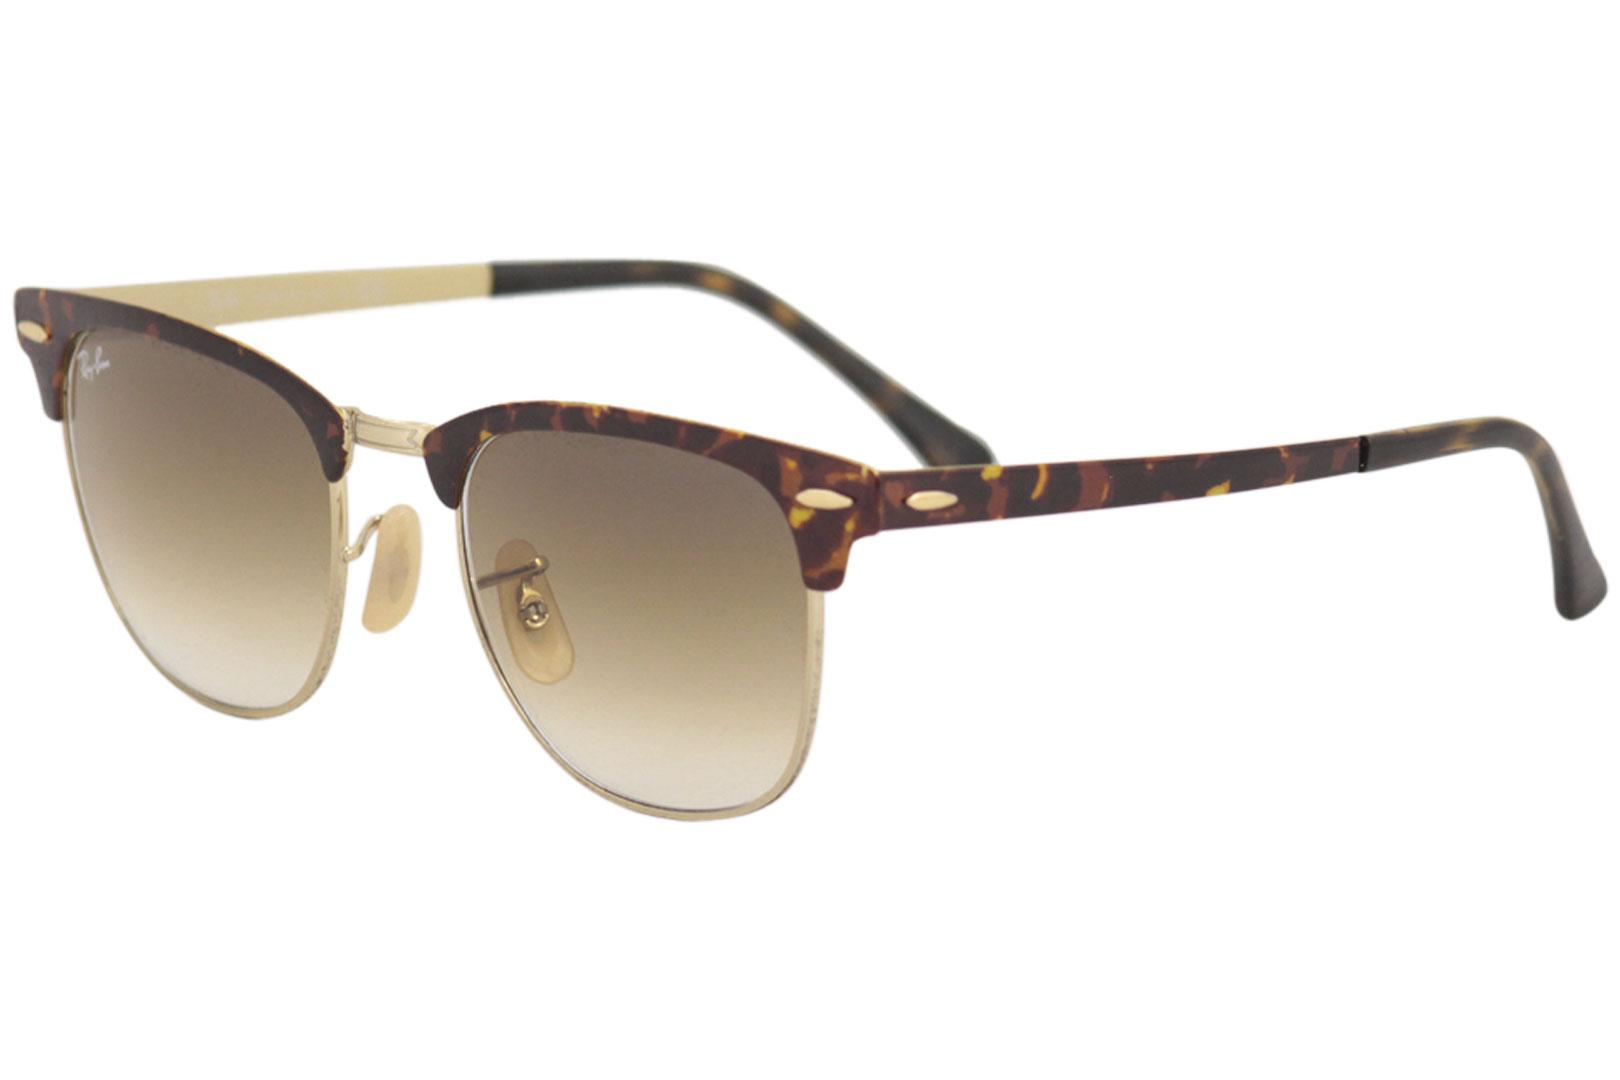 cbcea2d2d054 Ray Ban Clubmaster Metal RB3716 RB/3716 Square RayBan Polarized Sunglasses